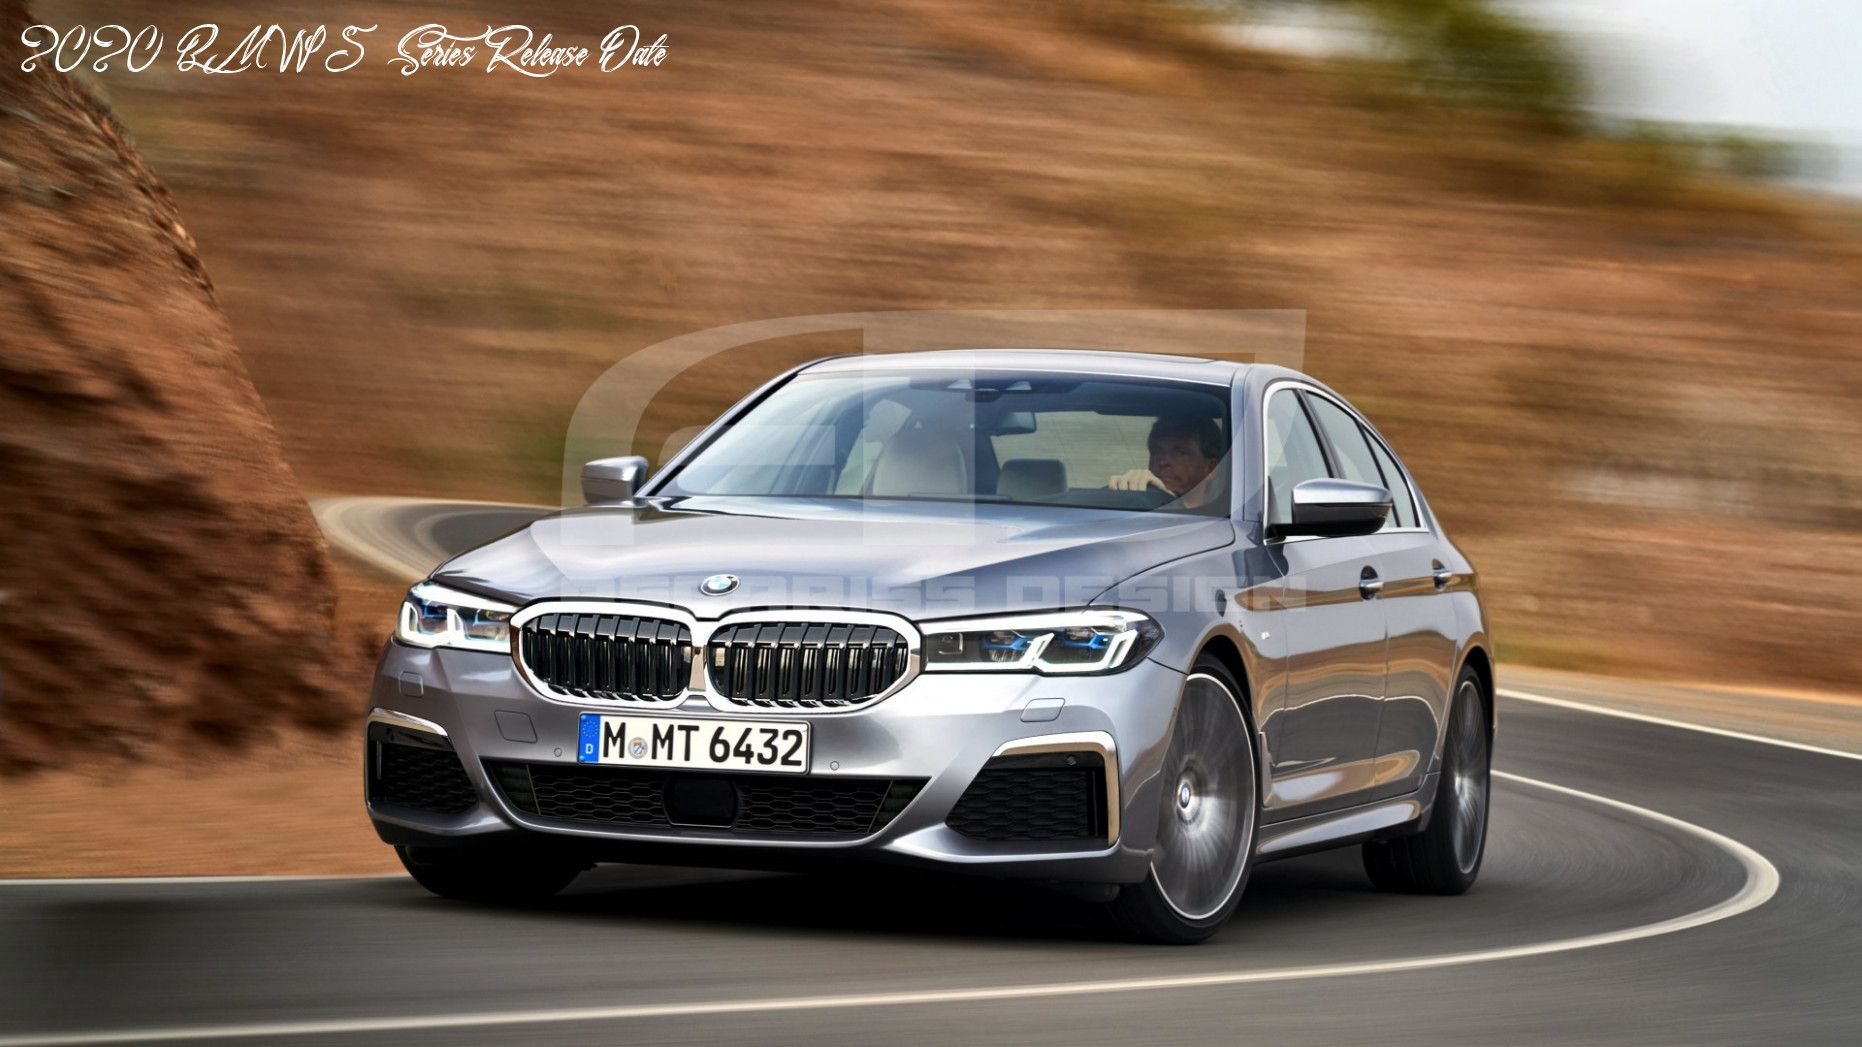 2020 BMW 5 Series Release Date Performance in 2020 | Bmw ...